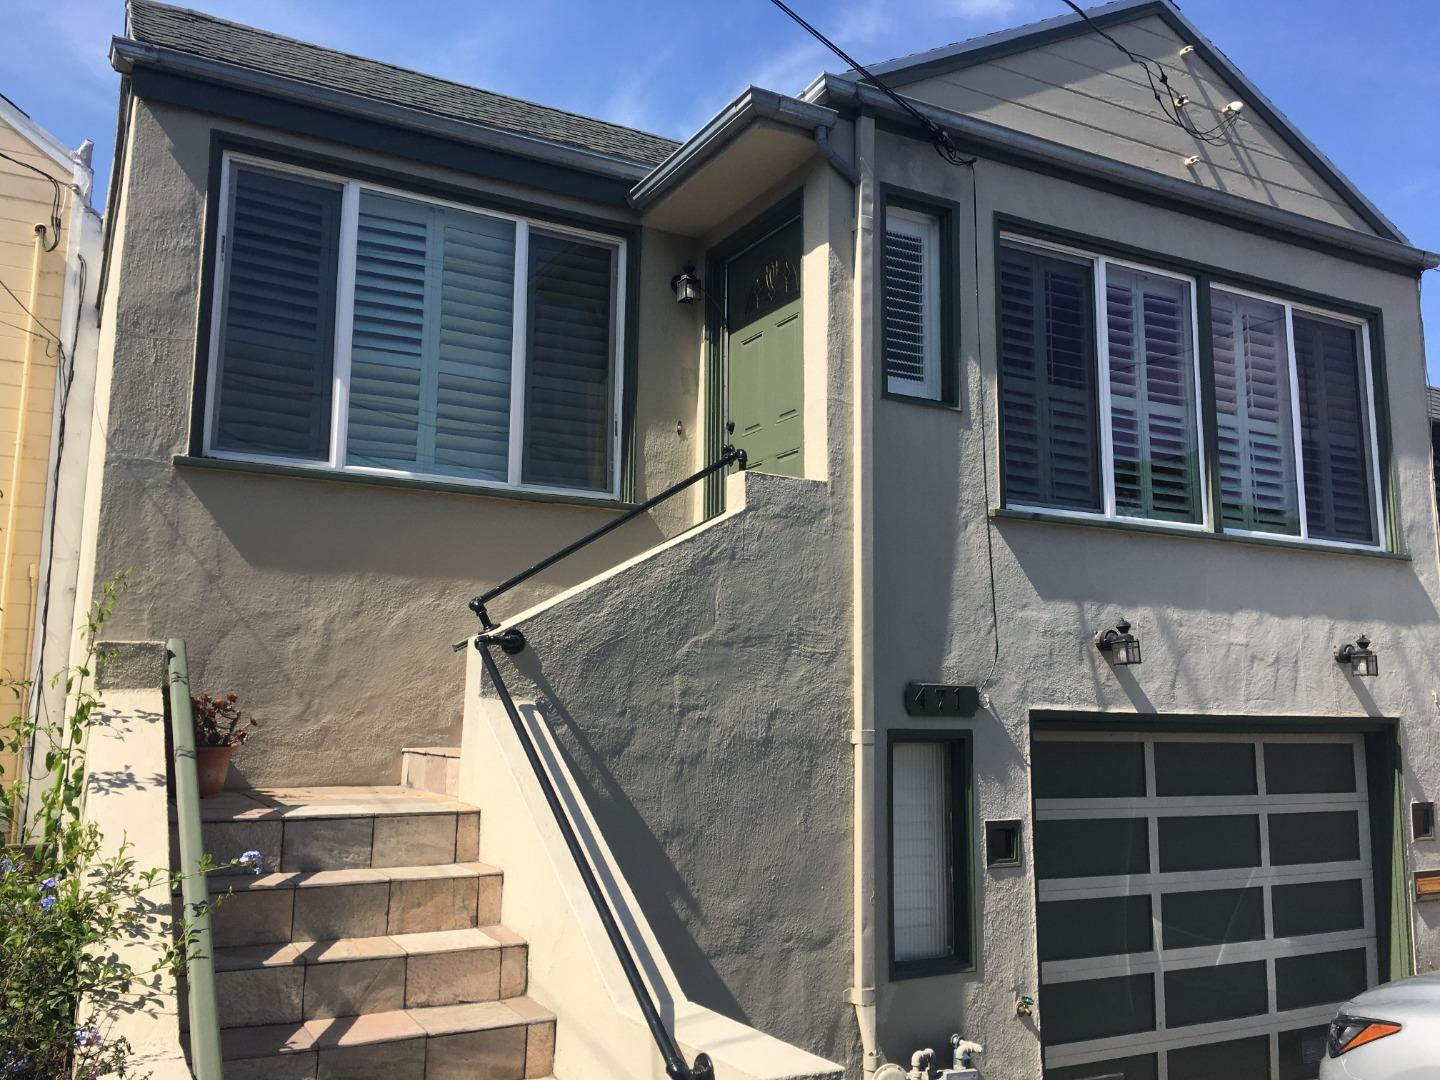 This property speaks to the San Francisco tradition. The location is a HUGE plus. Beautiful quaint property with easy access to interstate 280. Near San Francisco State and Stonestown Mall.  Many amenities with this property, central air, bonus space for his/her cave, and manicured hardwood floors throughout the home. Comfortable garage space for off-street and parking for your treasured guest.  When you open the door and see that beautiful fireplace and space, it will give you a wow moment. This property won't last.